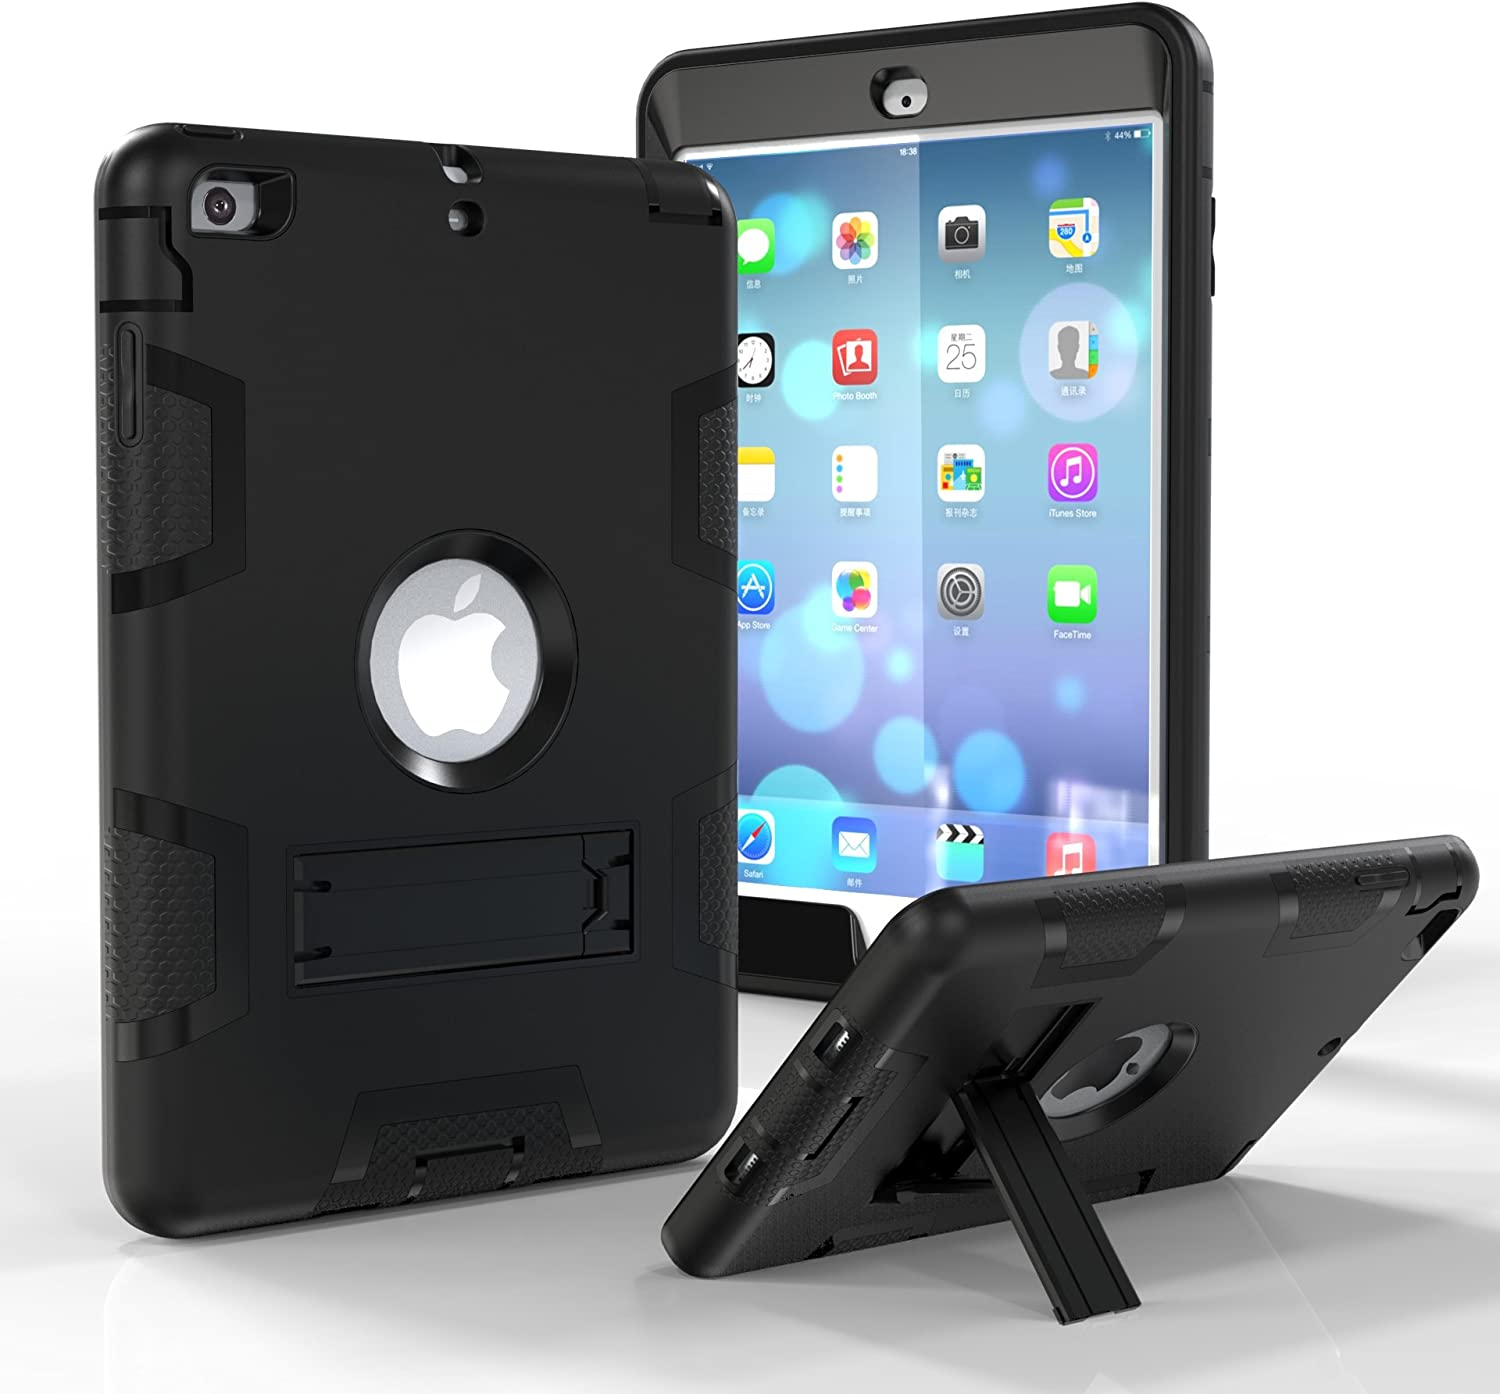 iPad Mini Case, iPad Mini 2 Case,iPad Mini 3 Case, Dooge Three Layers PC&Silicon Armor Defender Heavy Duty Shockproof Rugged Hybrid Full Body Protective Case with Kickstand for Apple iPad Mini 1 2 3